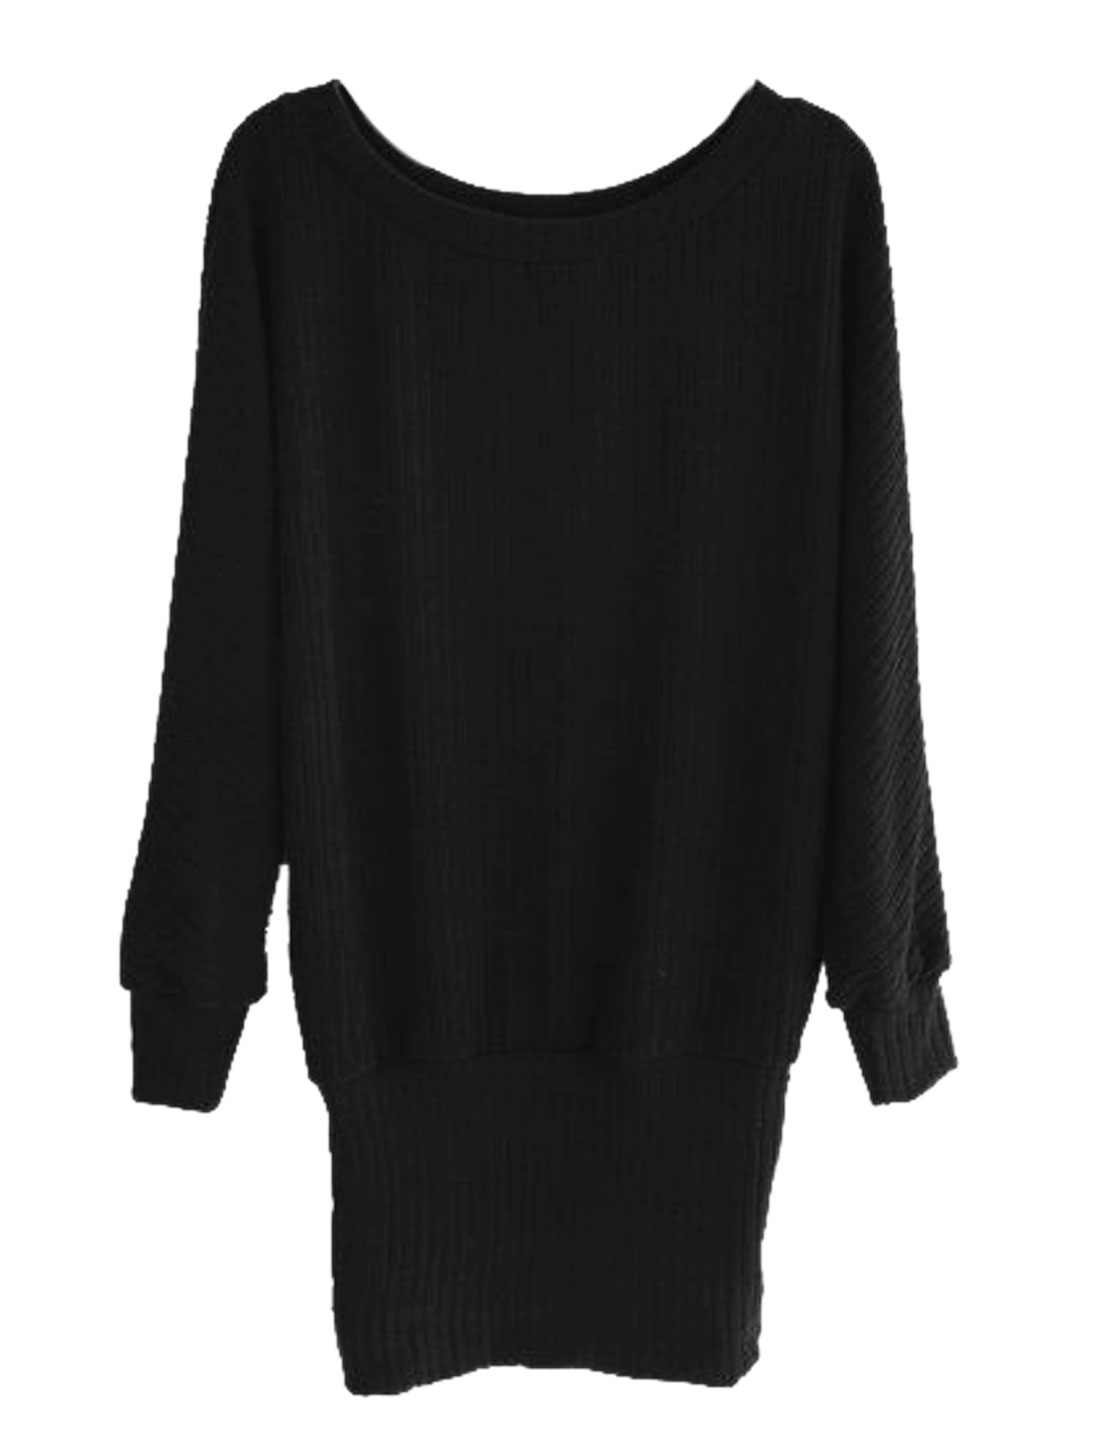 Women Scoop Neck Dolman Sleeves Knitted Blouson Dress Black S